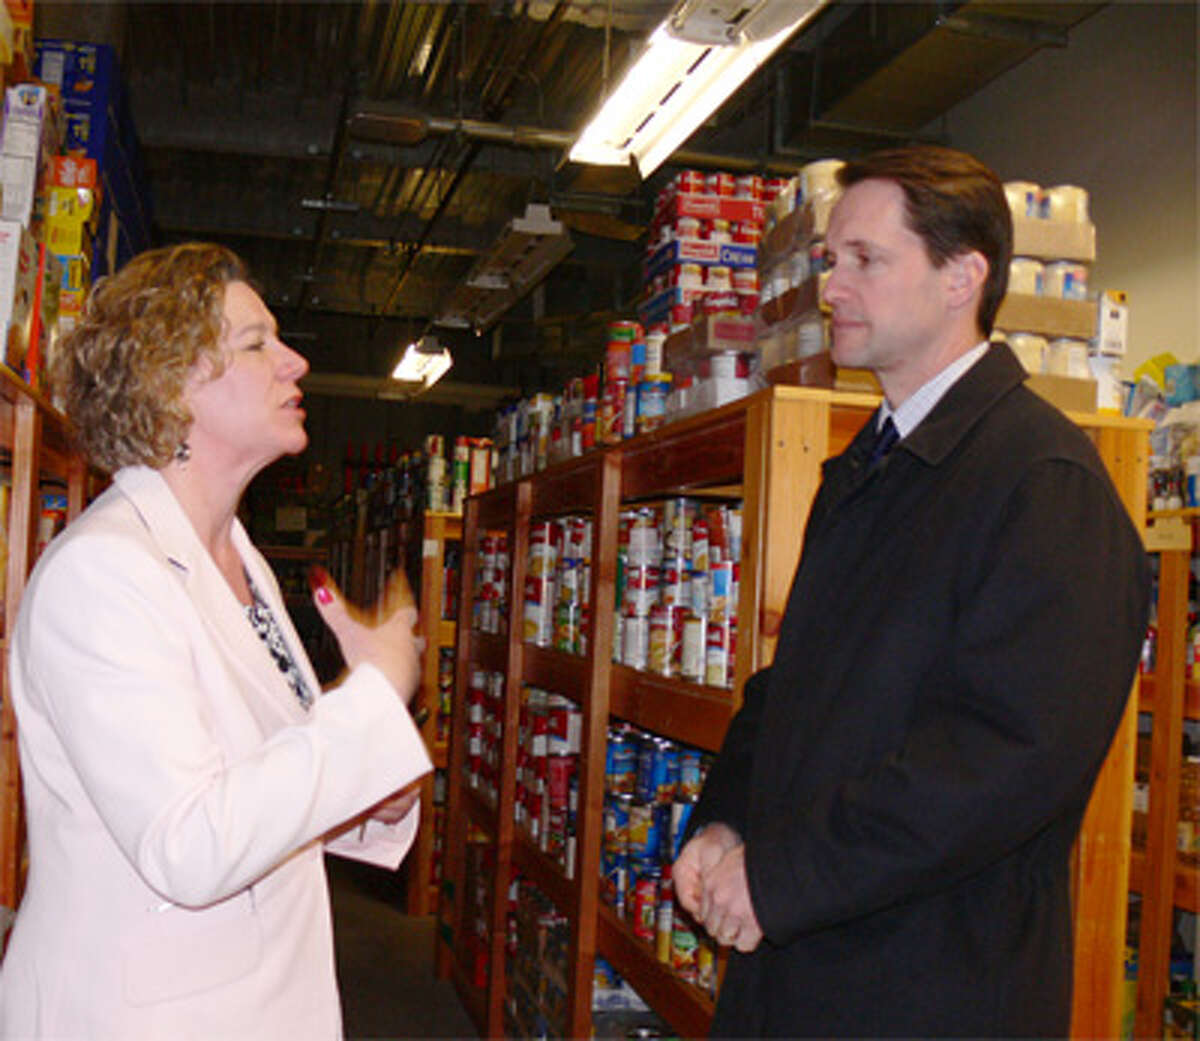 Susan J. Agamy, Spooner House executive director, describes the facility's food bank services to U.S. Rep. Jim Himes, who represents most of Shelton.